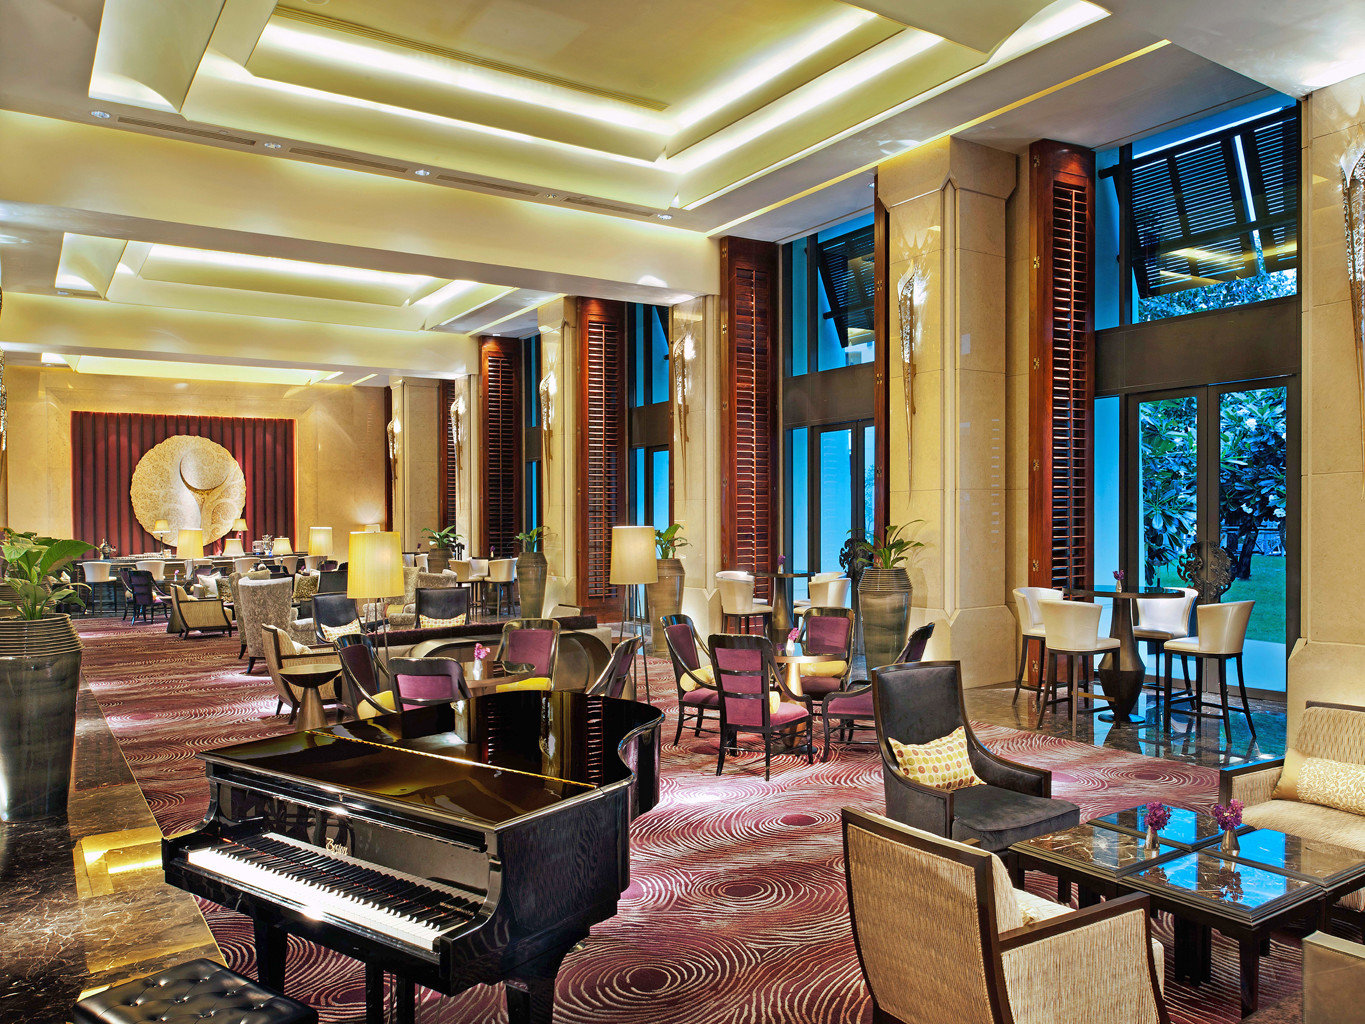 Bar City Classic Lobby Modern Resort property living room mansion home recreation room palace function hall